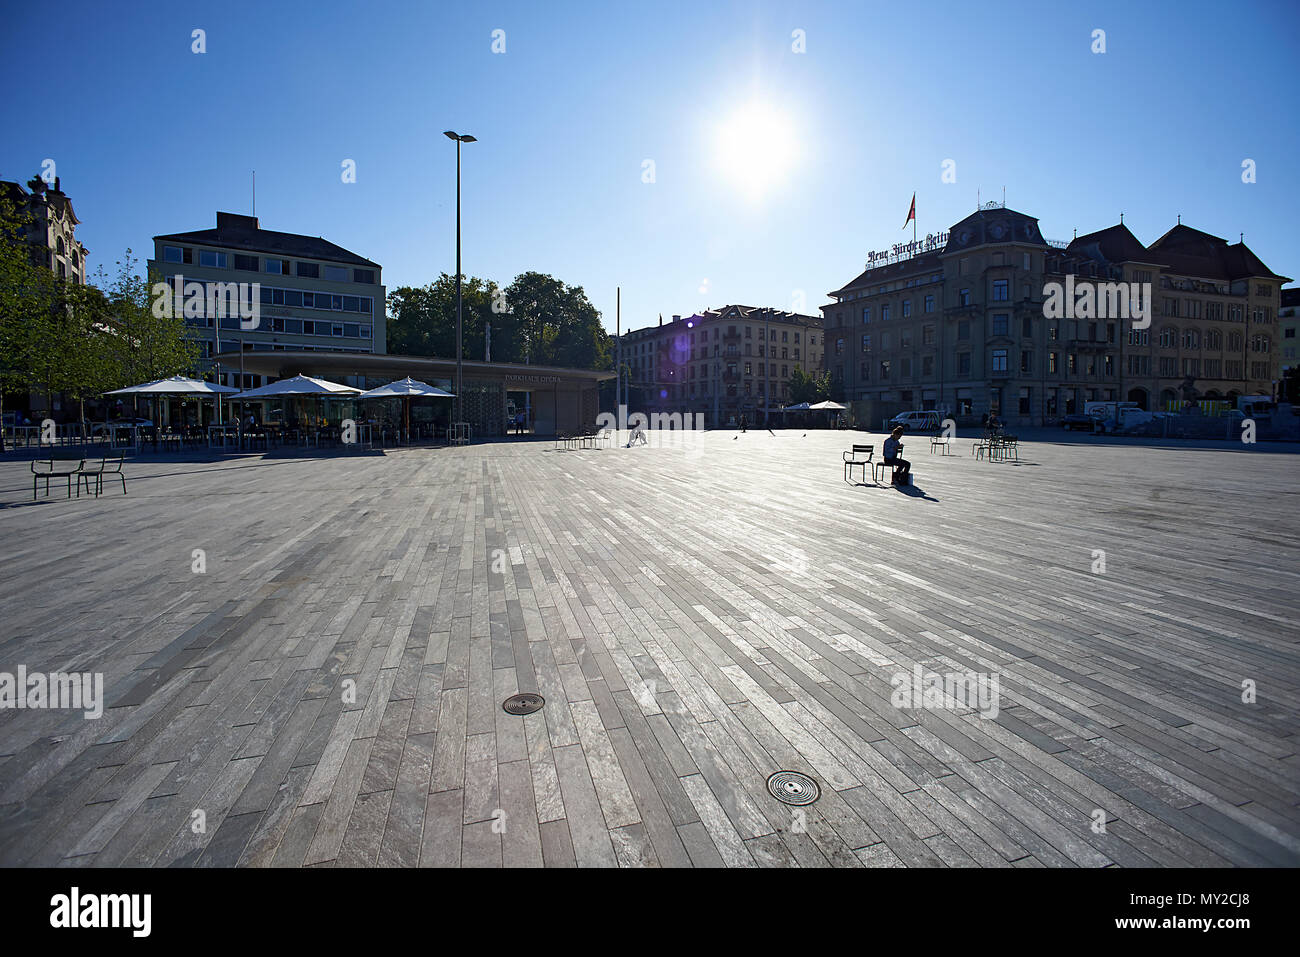 Sechseläutenplatz big square in front of the opera house in Zurich city centre in early morning summer sunshine - Stock Image